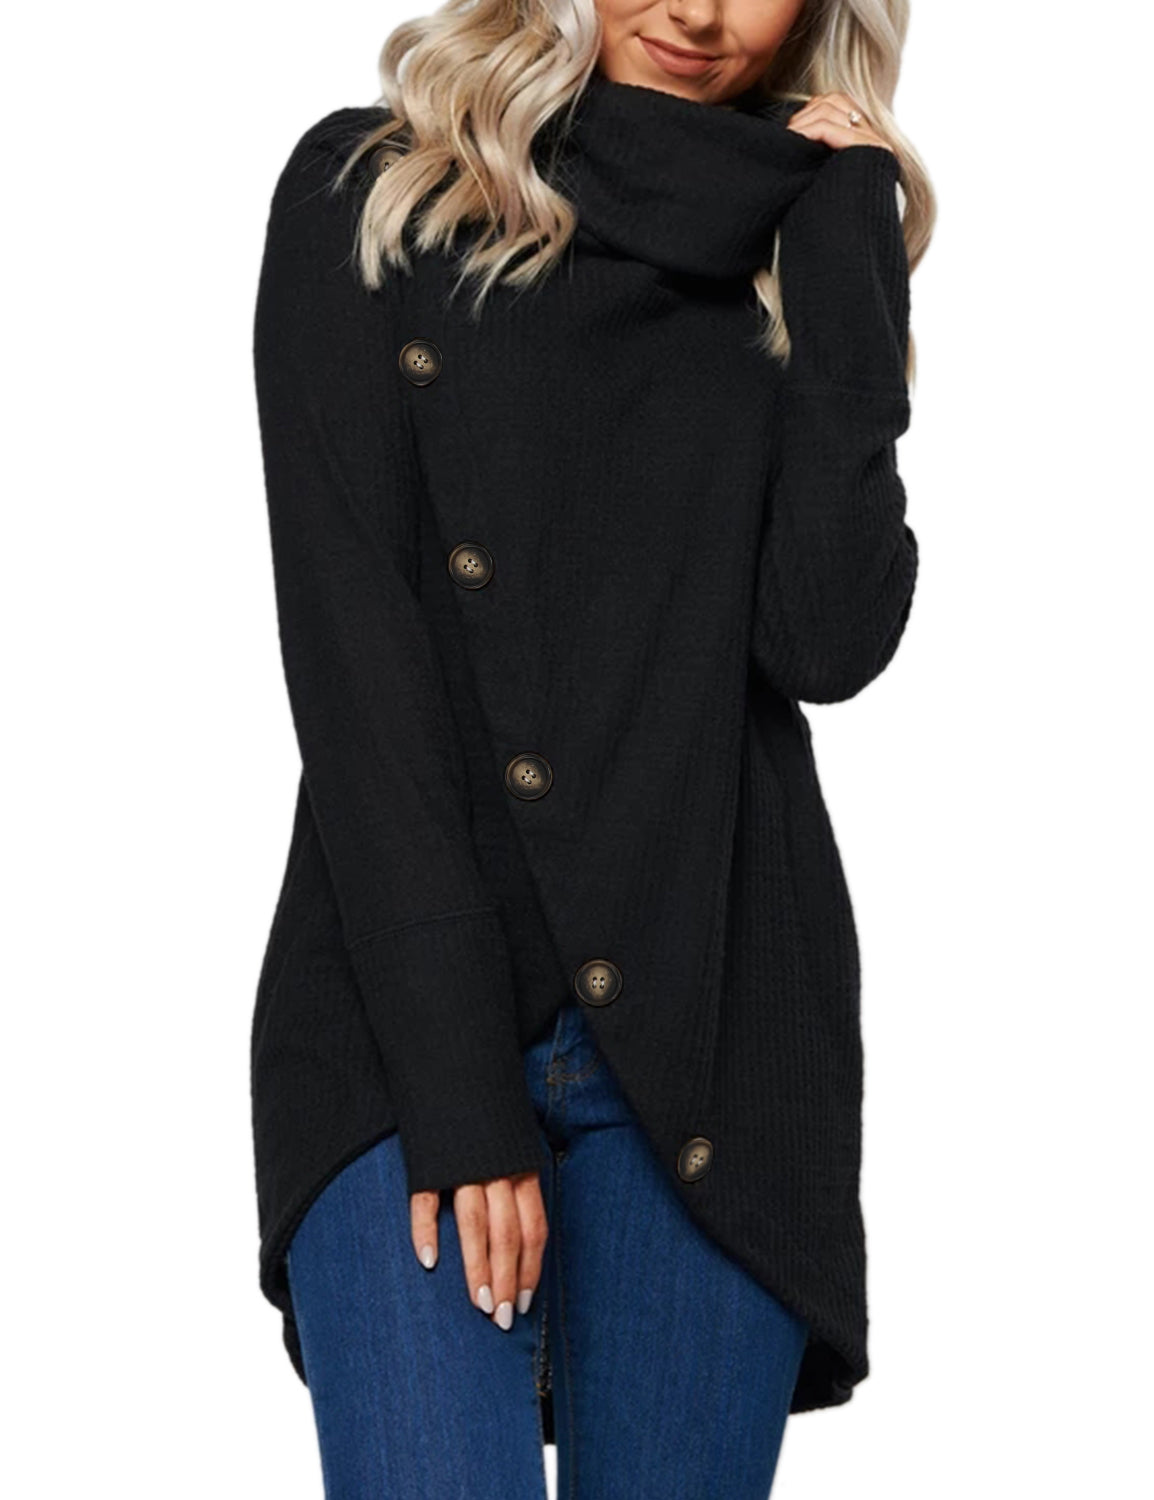 Blooming Jelly_Asymmetric Turtle Neck Button Up Wrap Sweater_Black_292042_02_Comfy Women Daily Wear_Tops_Sweater